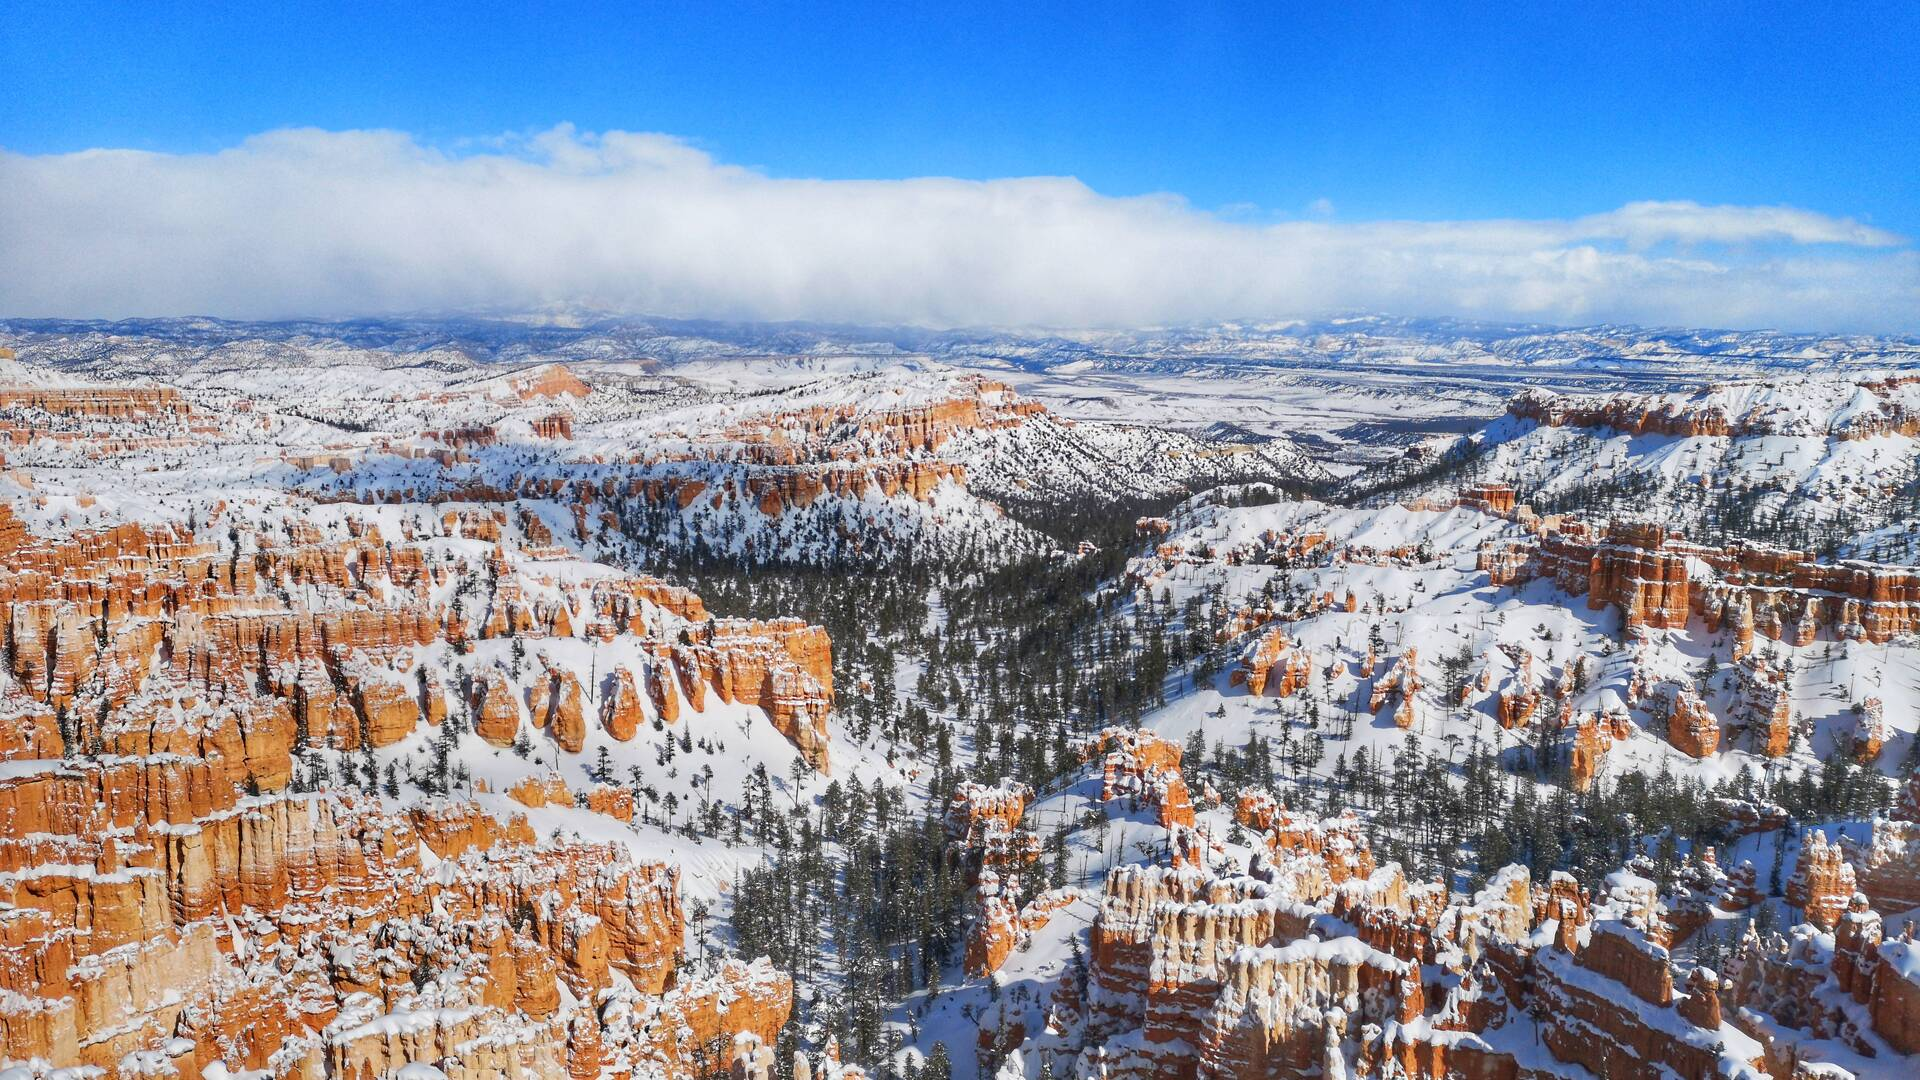 snow-at-bryce-canyon-national-park-5k-x1.jpg